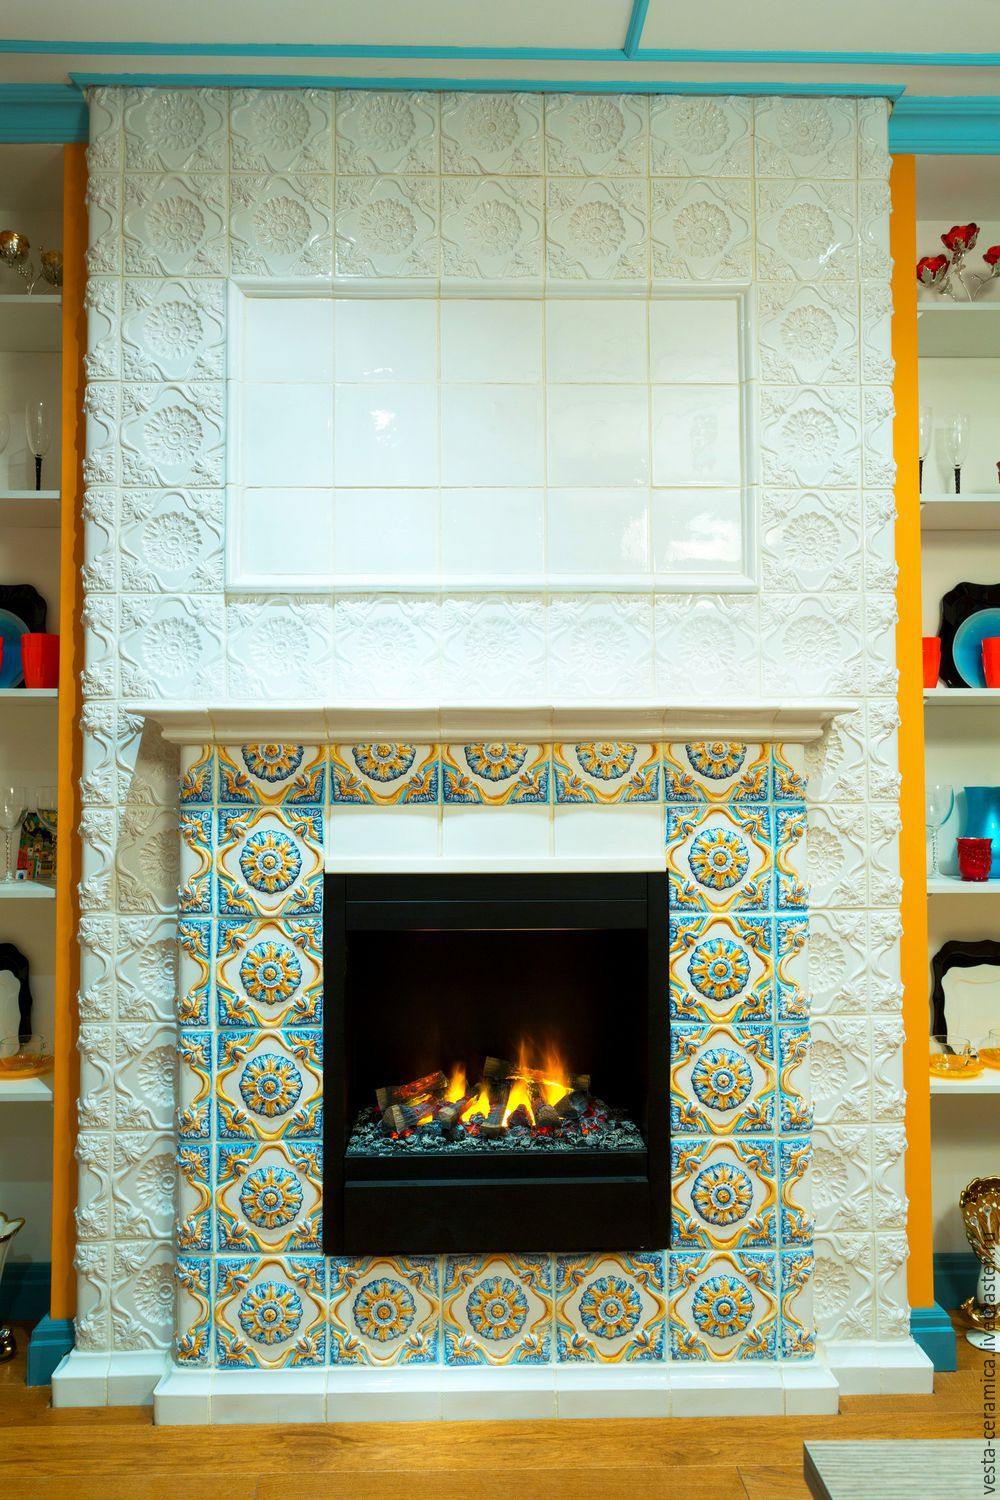 6b7eea11ad226d9b6cac3362c96y stoves fireplaces tiled fireplace chinoiserie